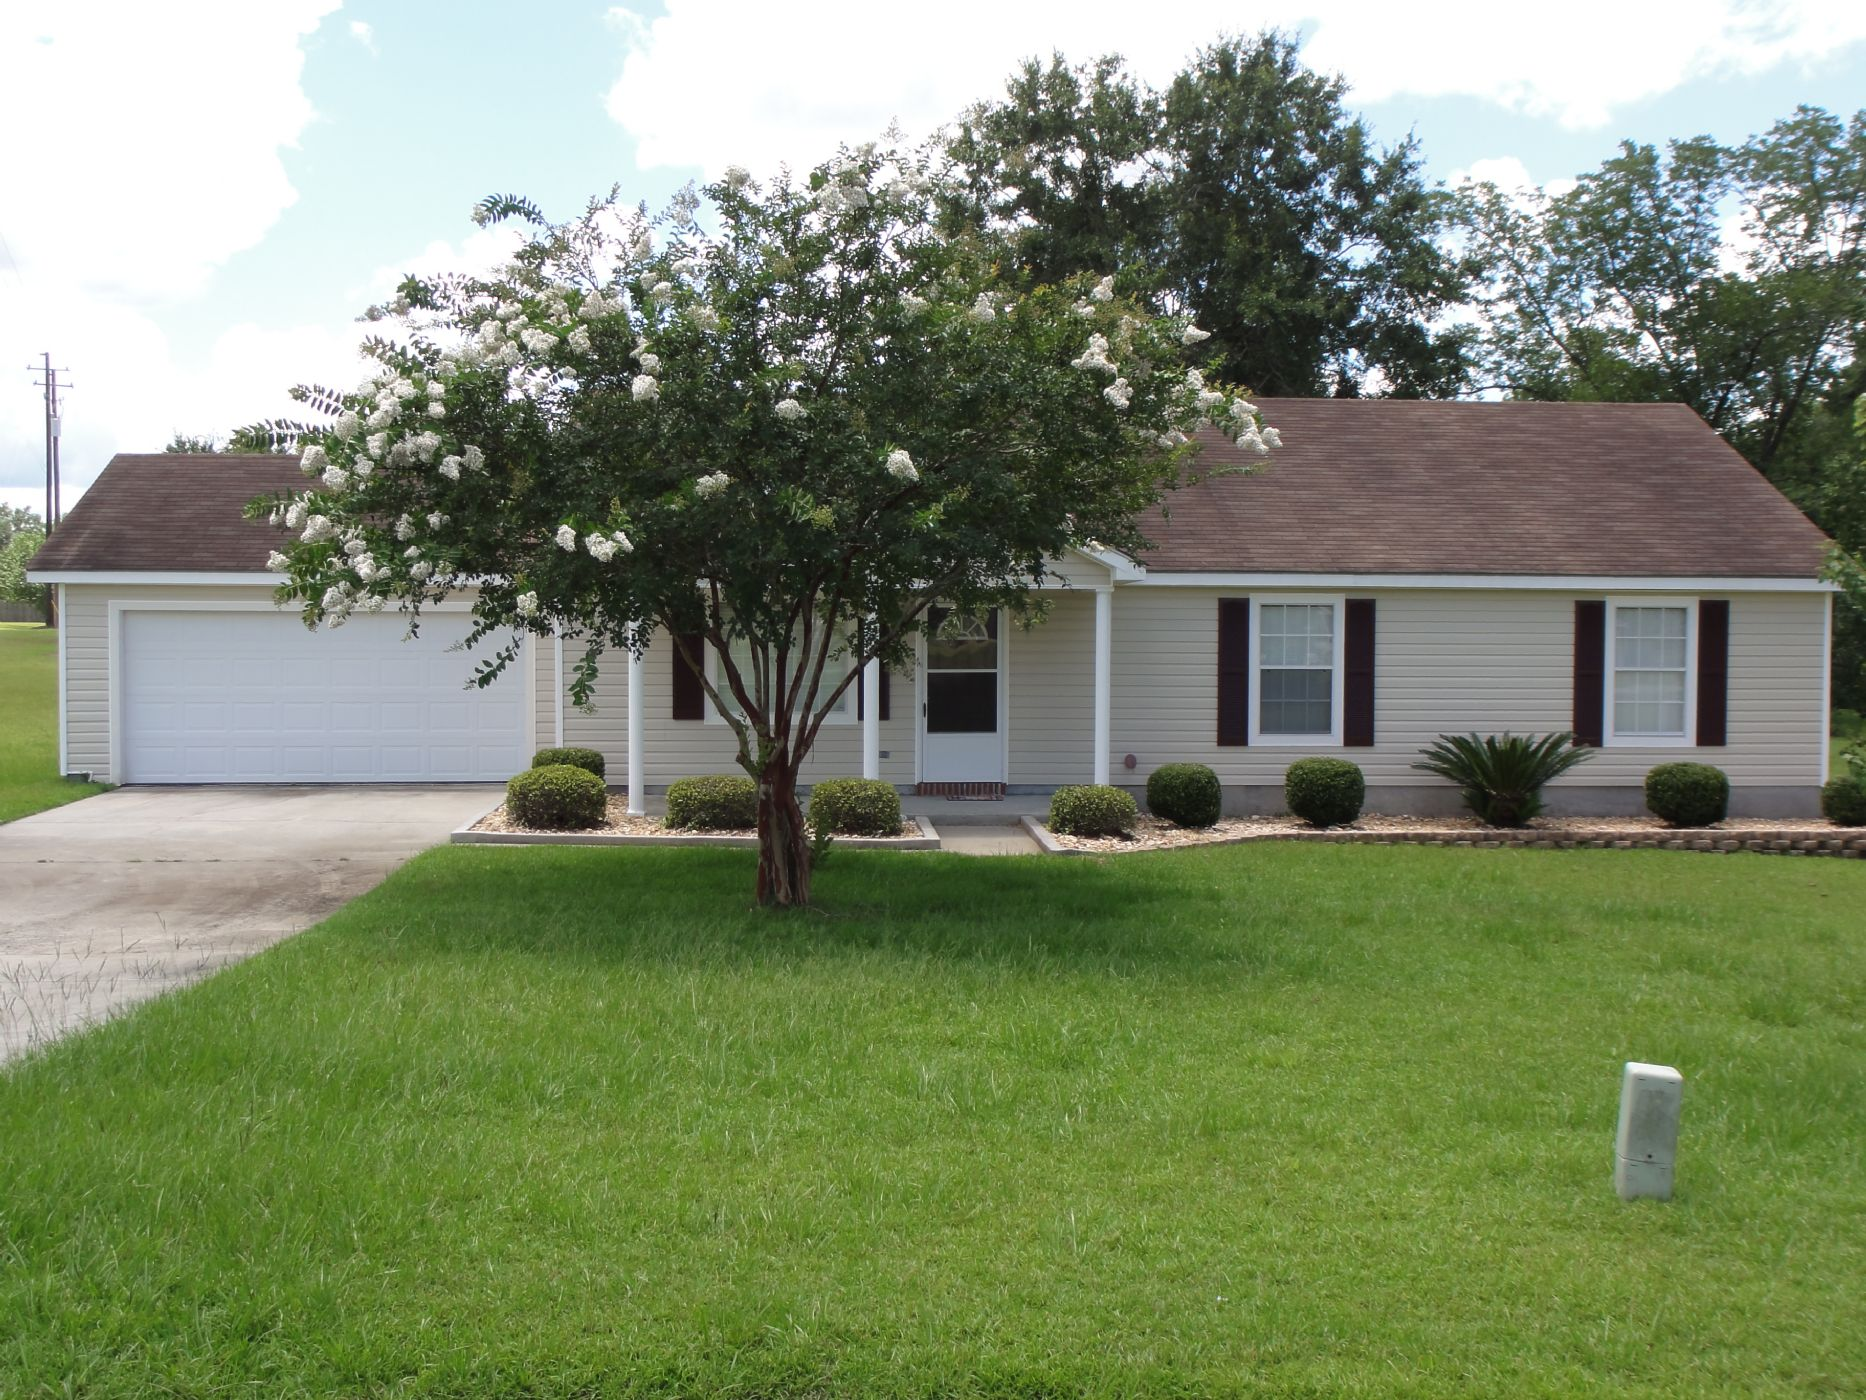 Valdosta Home, GA Real Estate Listing